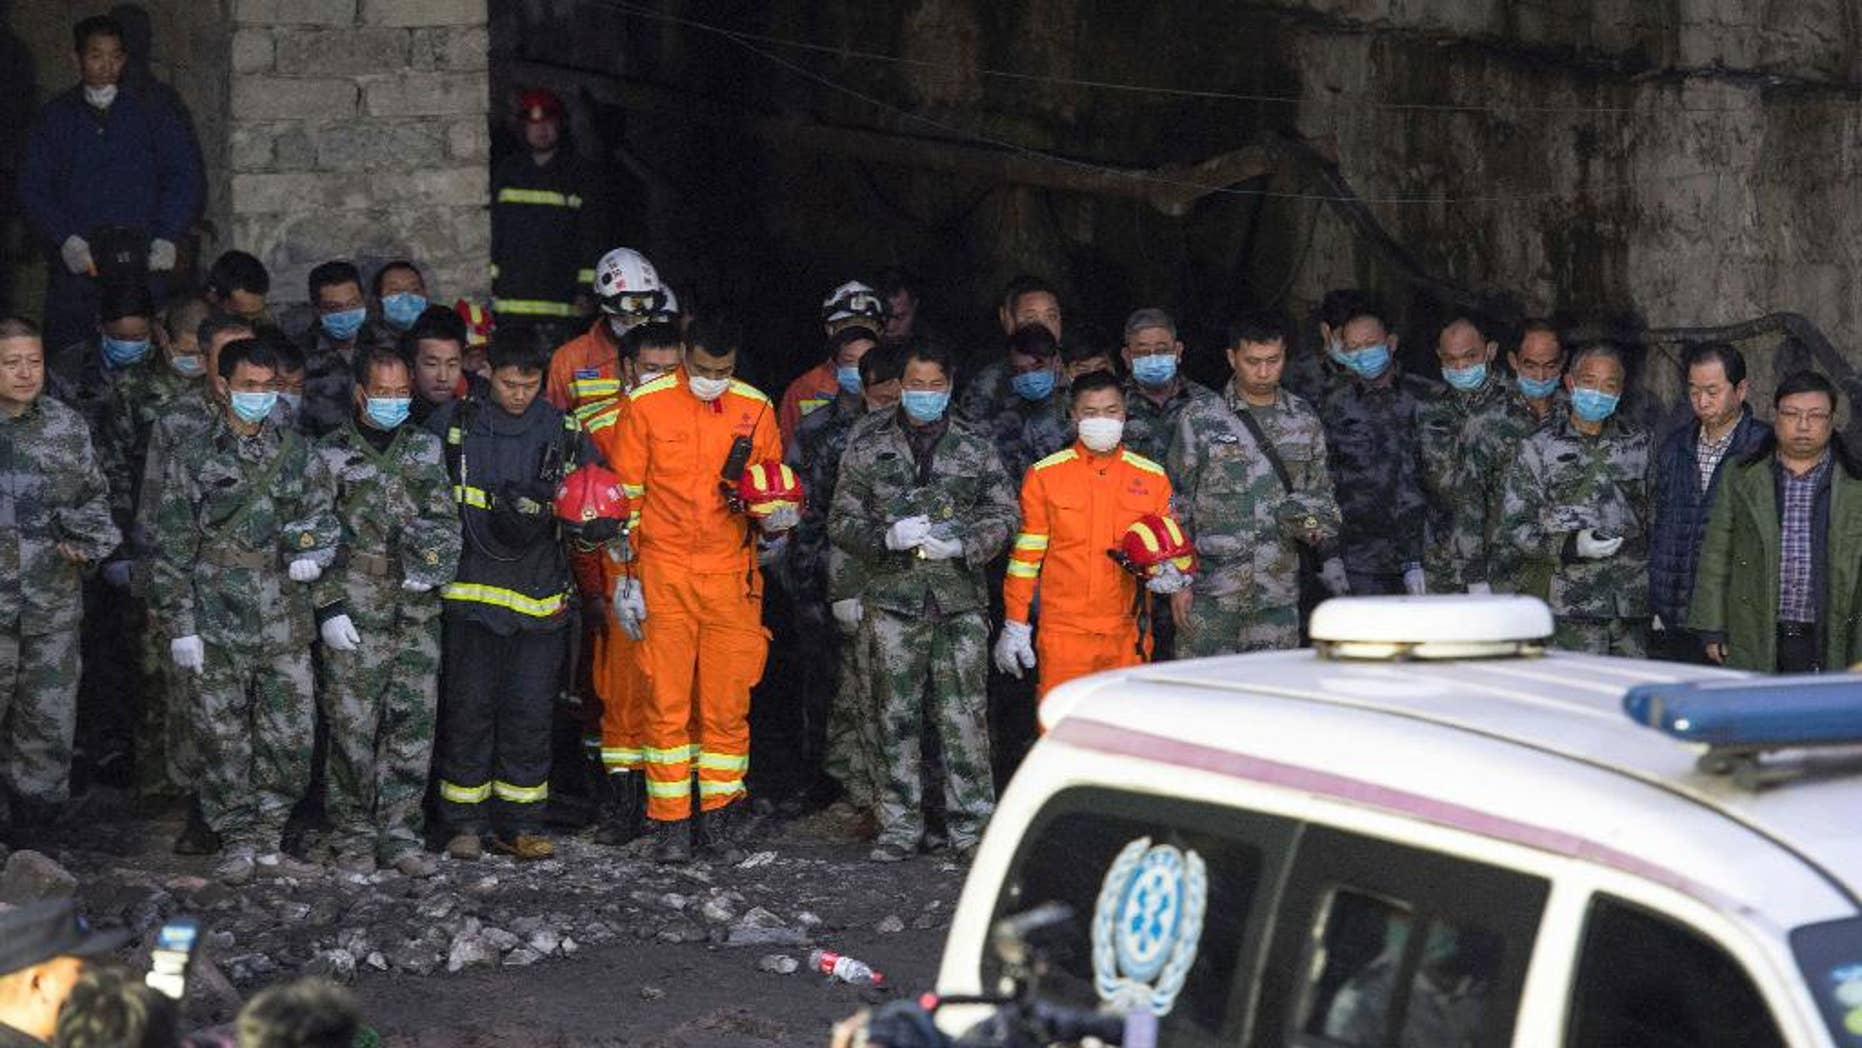 Rescuers mourn for victims at Jinshangou Coal Mine in Chongqing, southwest China, on Tuesday.